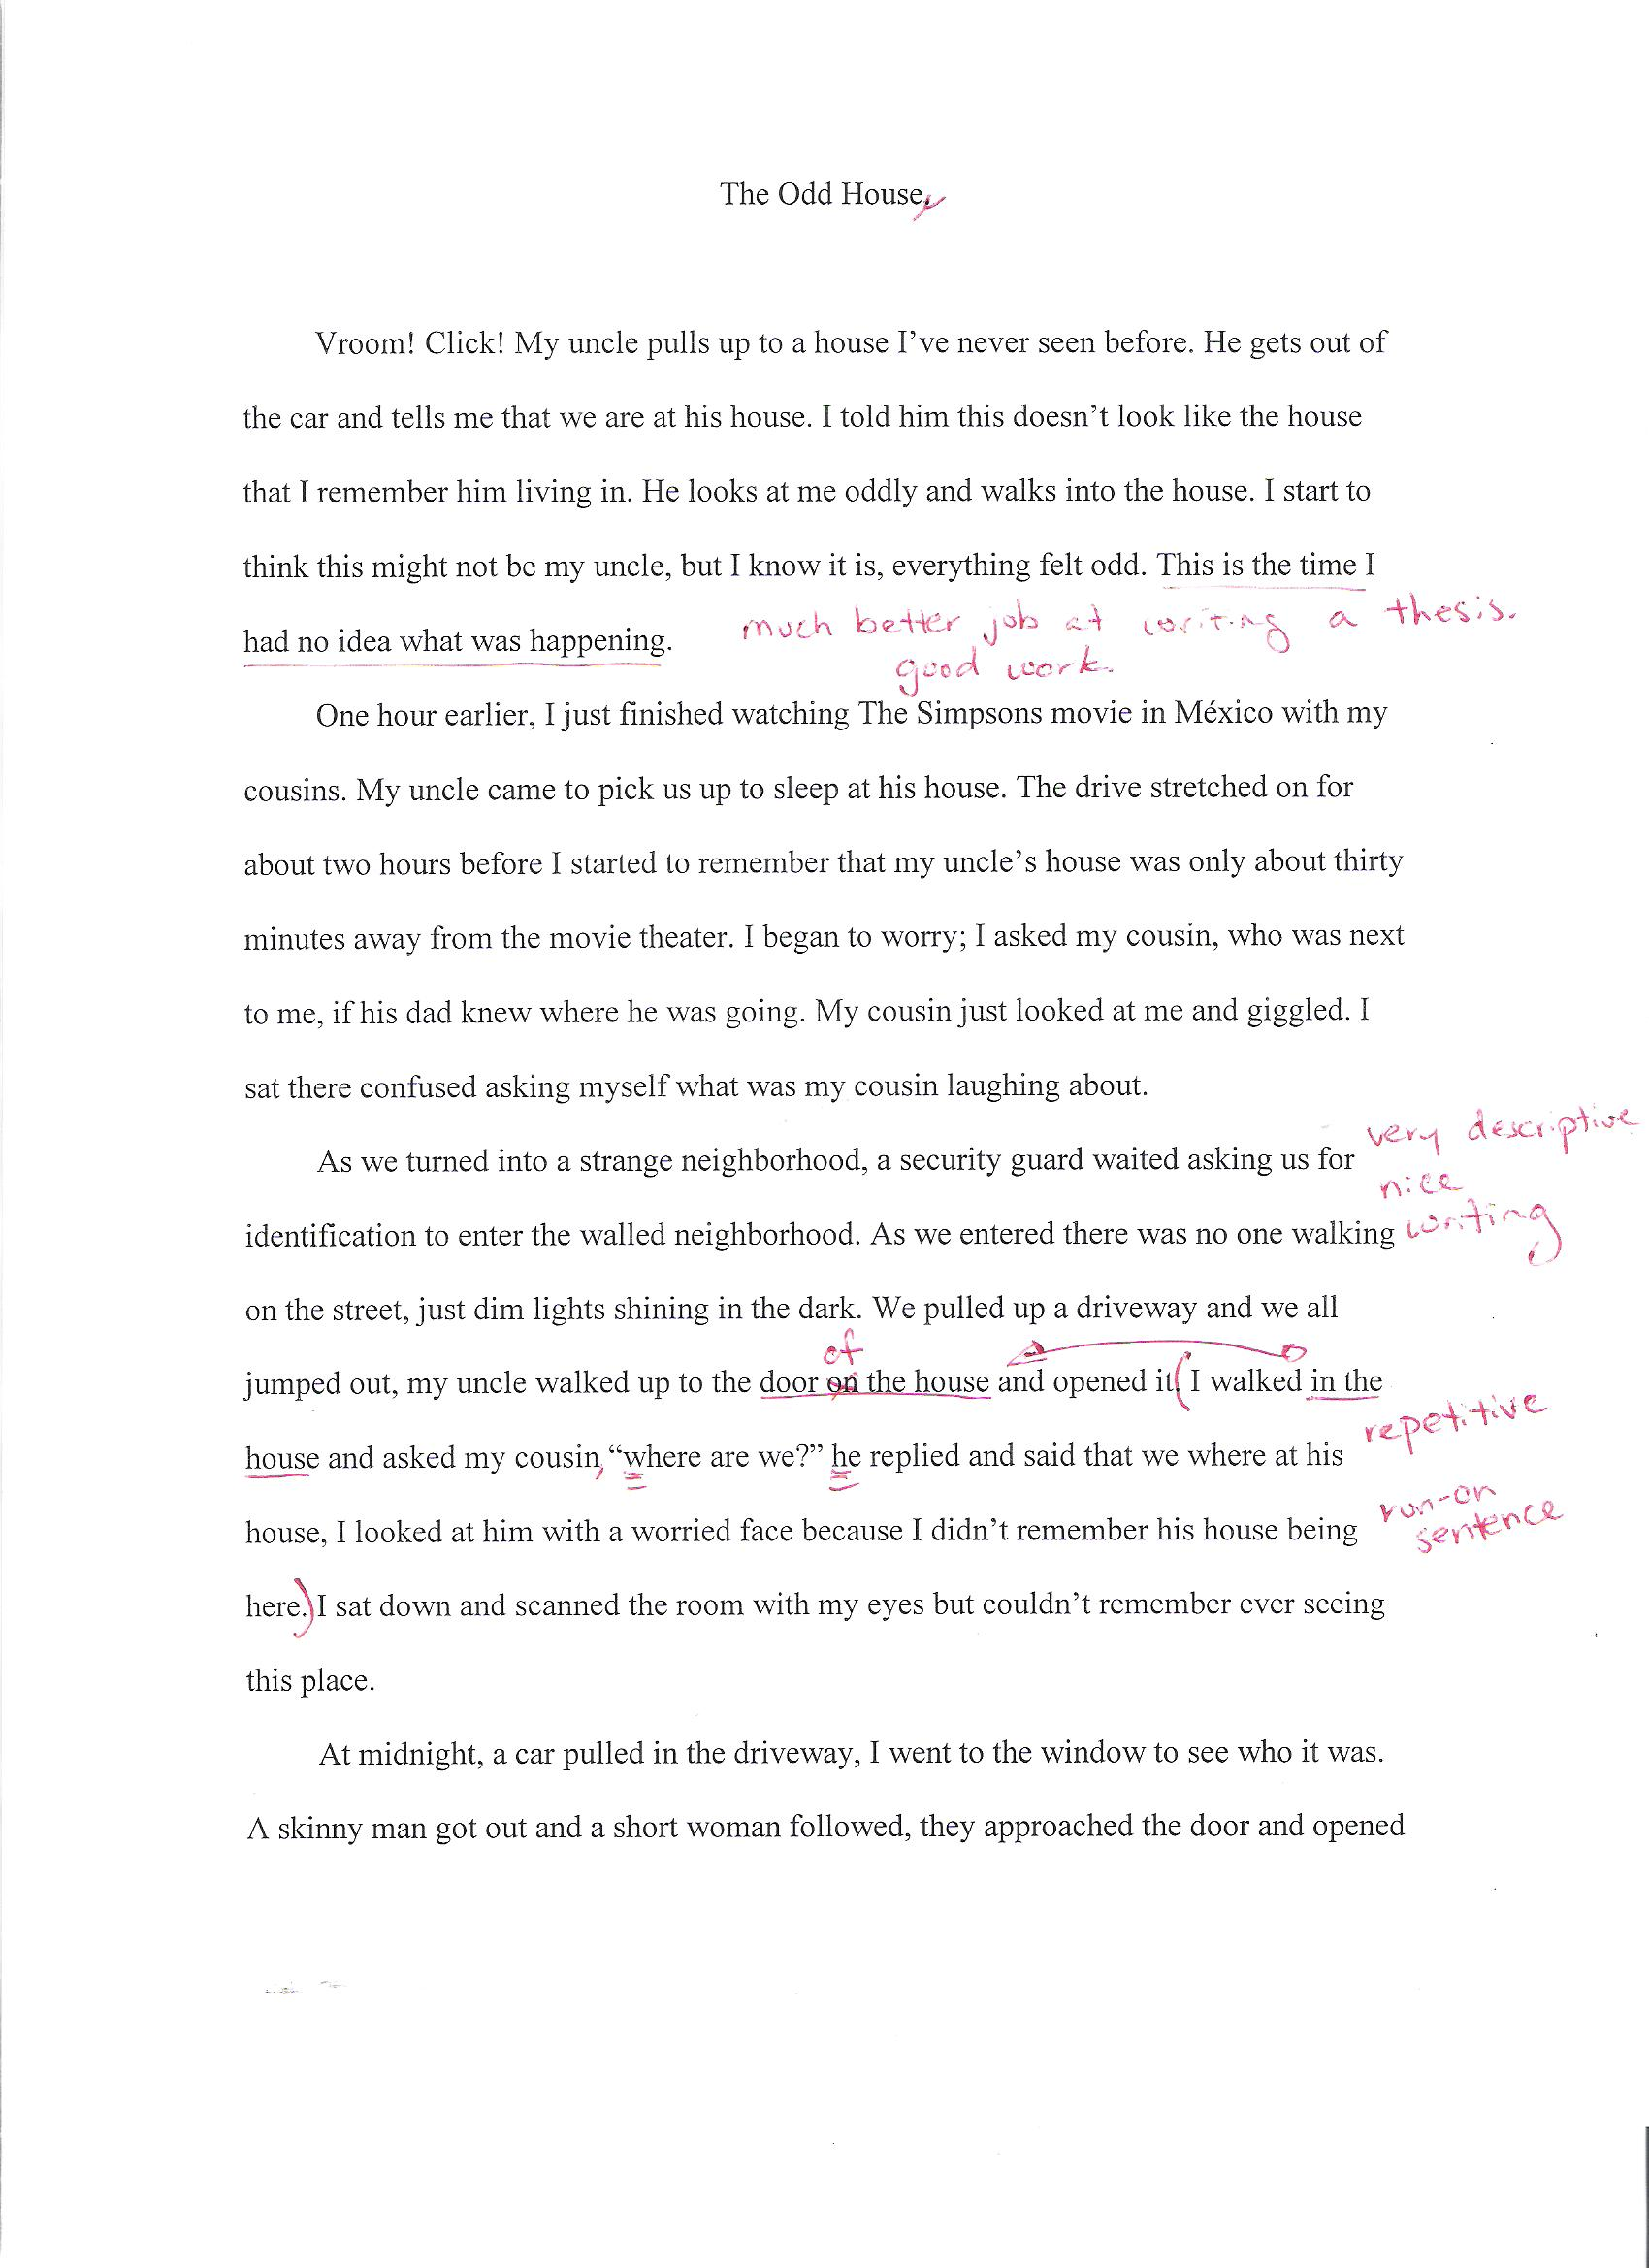 How To Write An Essay About A Film Public Health Essay Essay Service For You Public Health Essay Sample Nhs  Character Essay Essay On Help Yourself Public Health Essays Picture Resume  Essay  Essay On Love also Pride And Prejudice Essay Prompts Public Health Essay Essay Service For You Public Health Essay  Research Essay Thesis